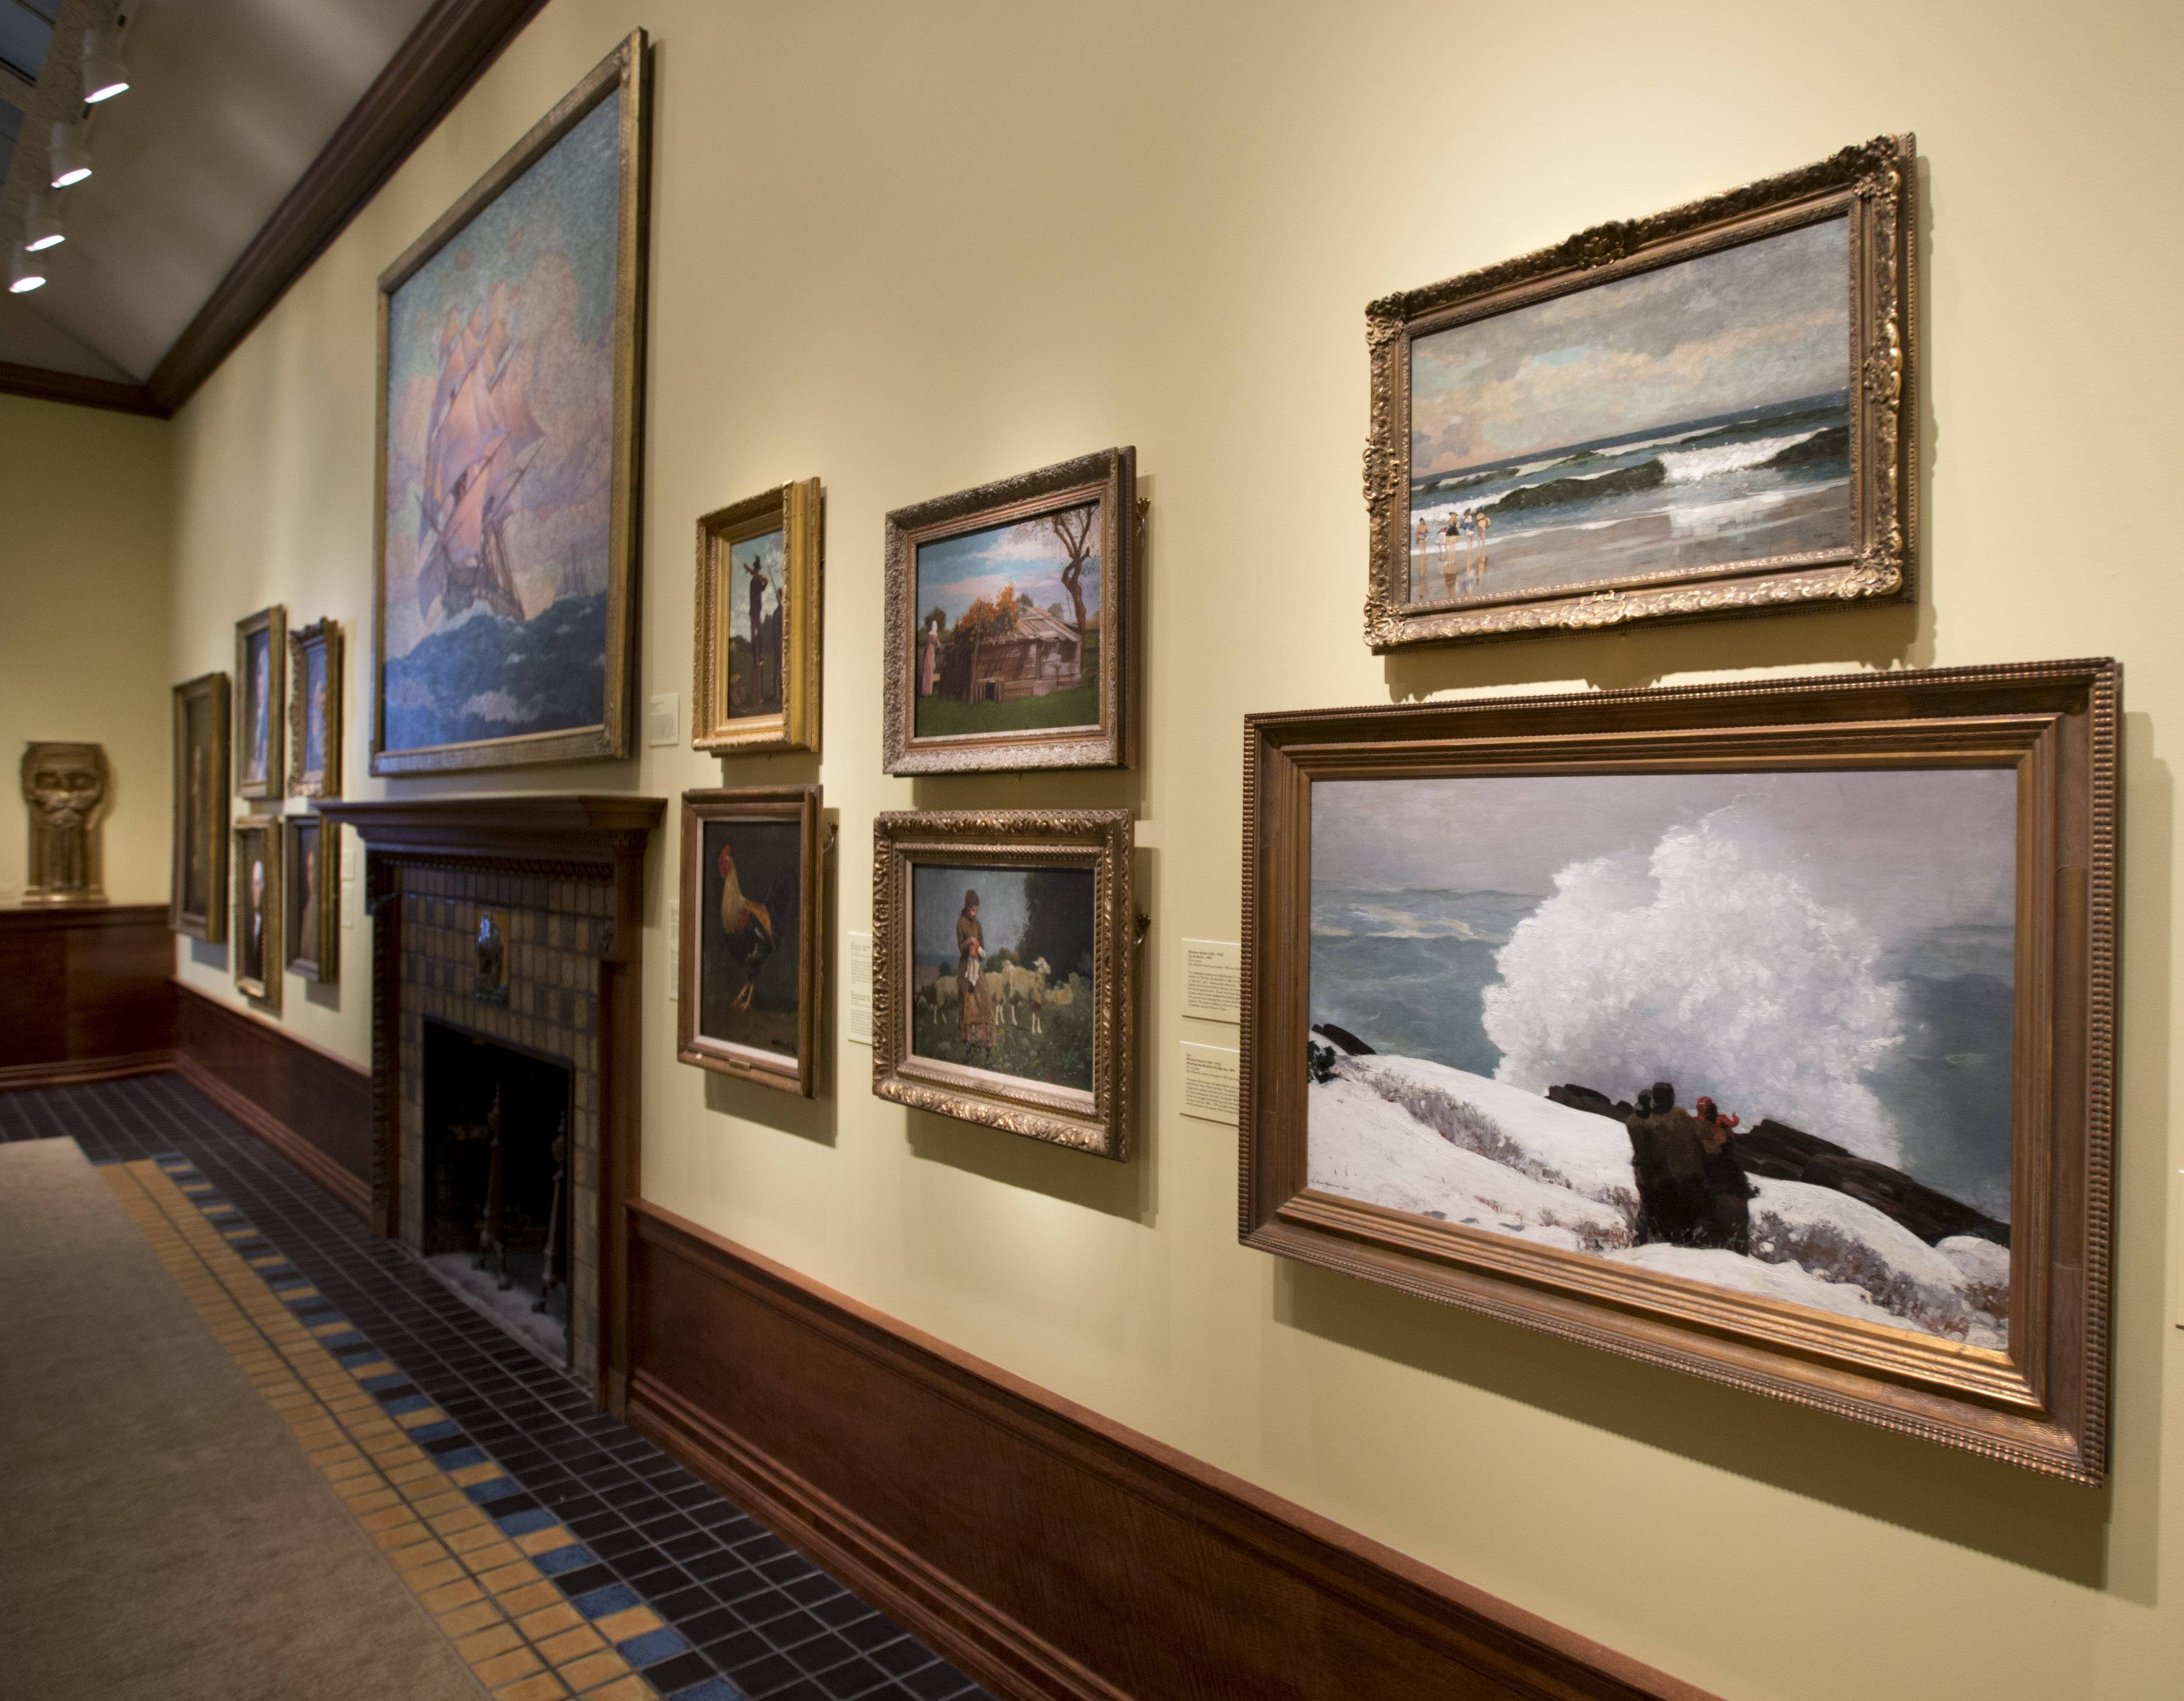 Paintings by artist Winslow Homer hang in the Arkell Museum in Canajoharie, New York. The museum, started in 1928 by Bartlett Arkell, founder of the Beech-Nut food company, is located next door to company's former plant in Canajoharie.